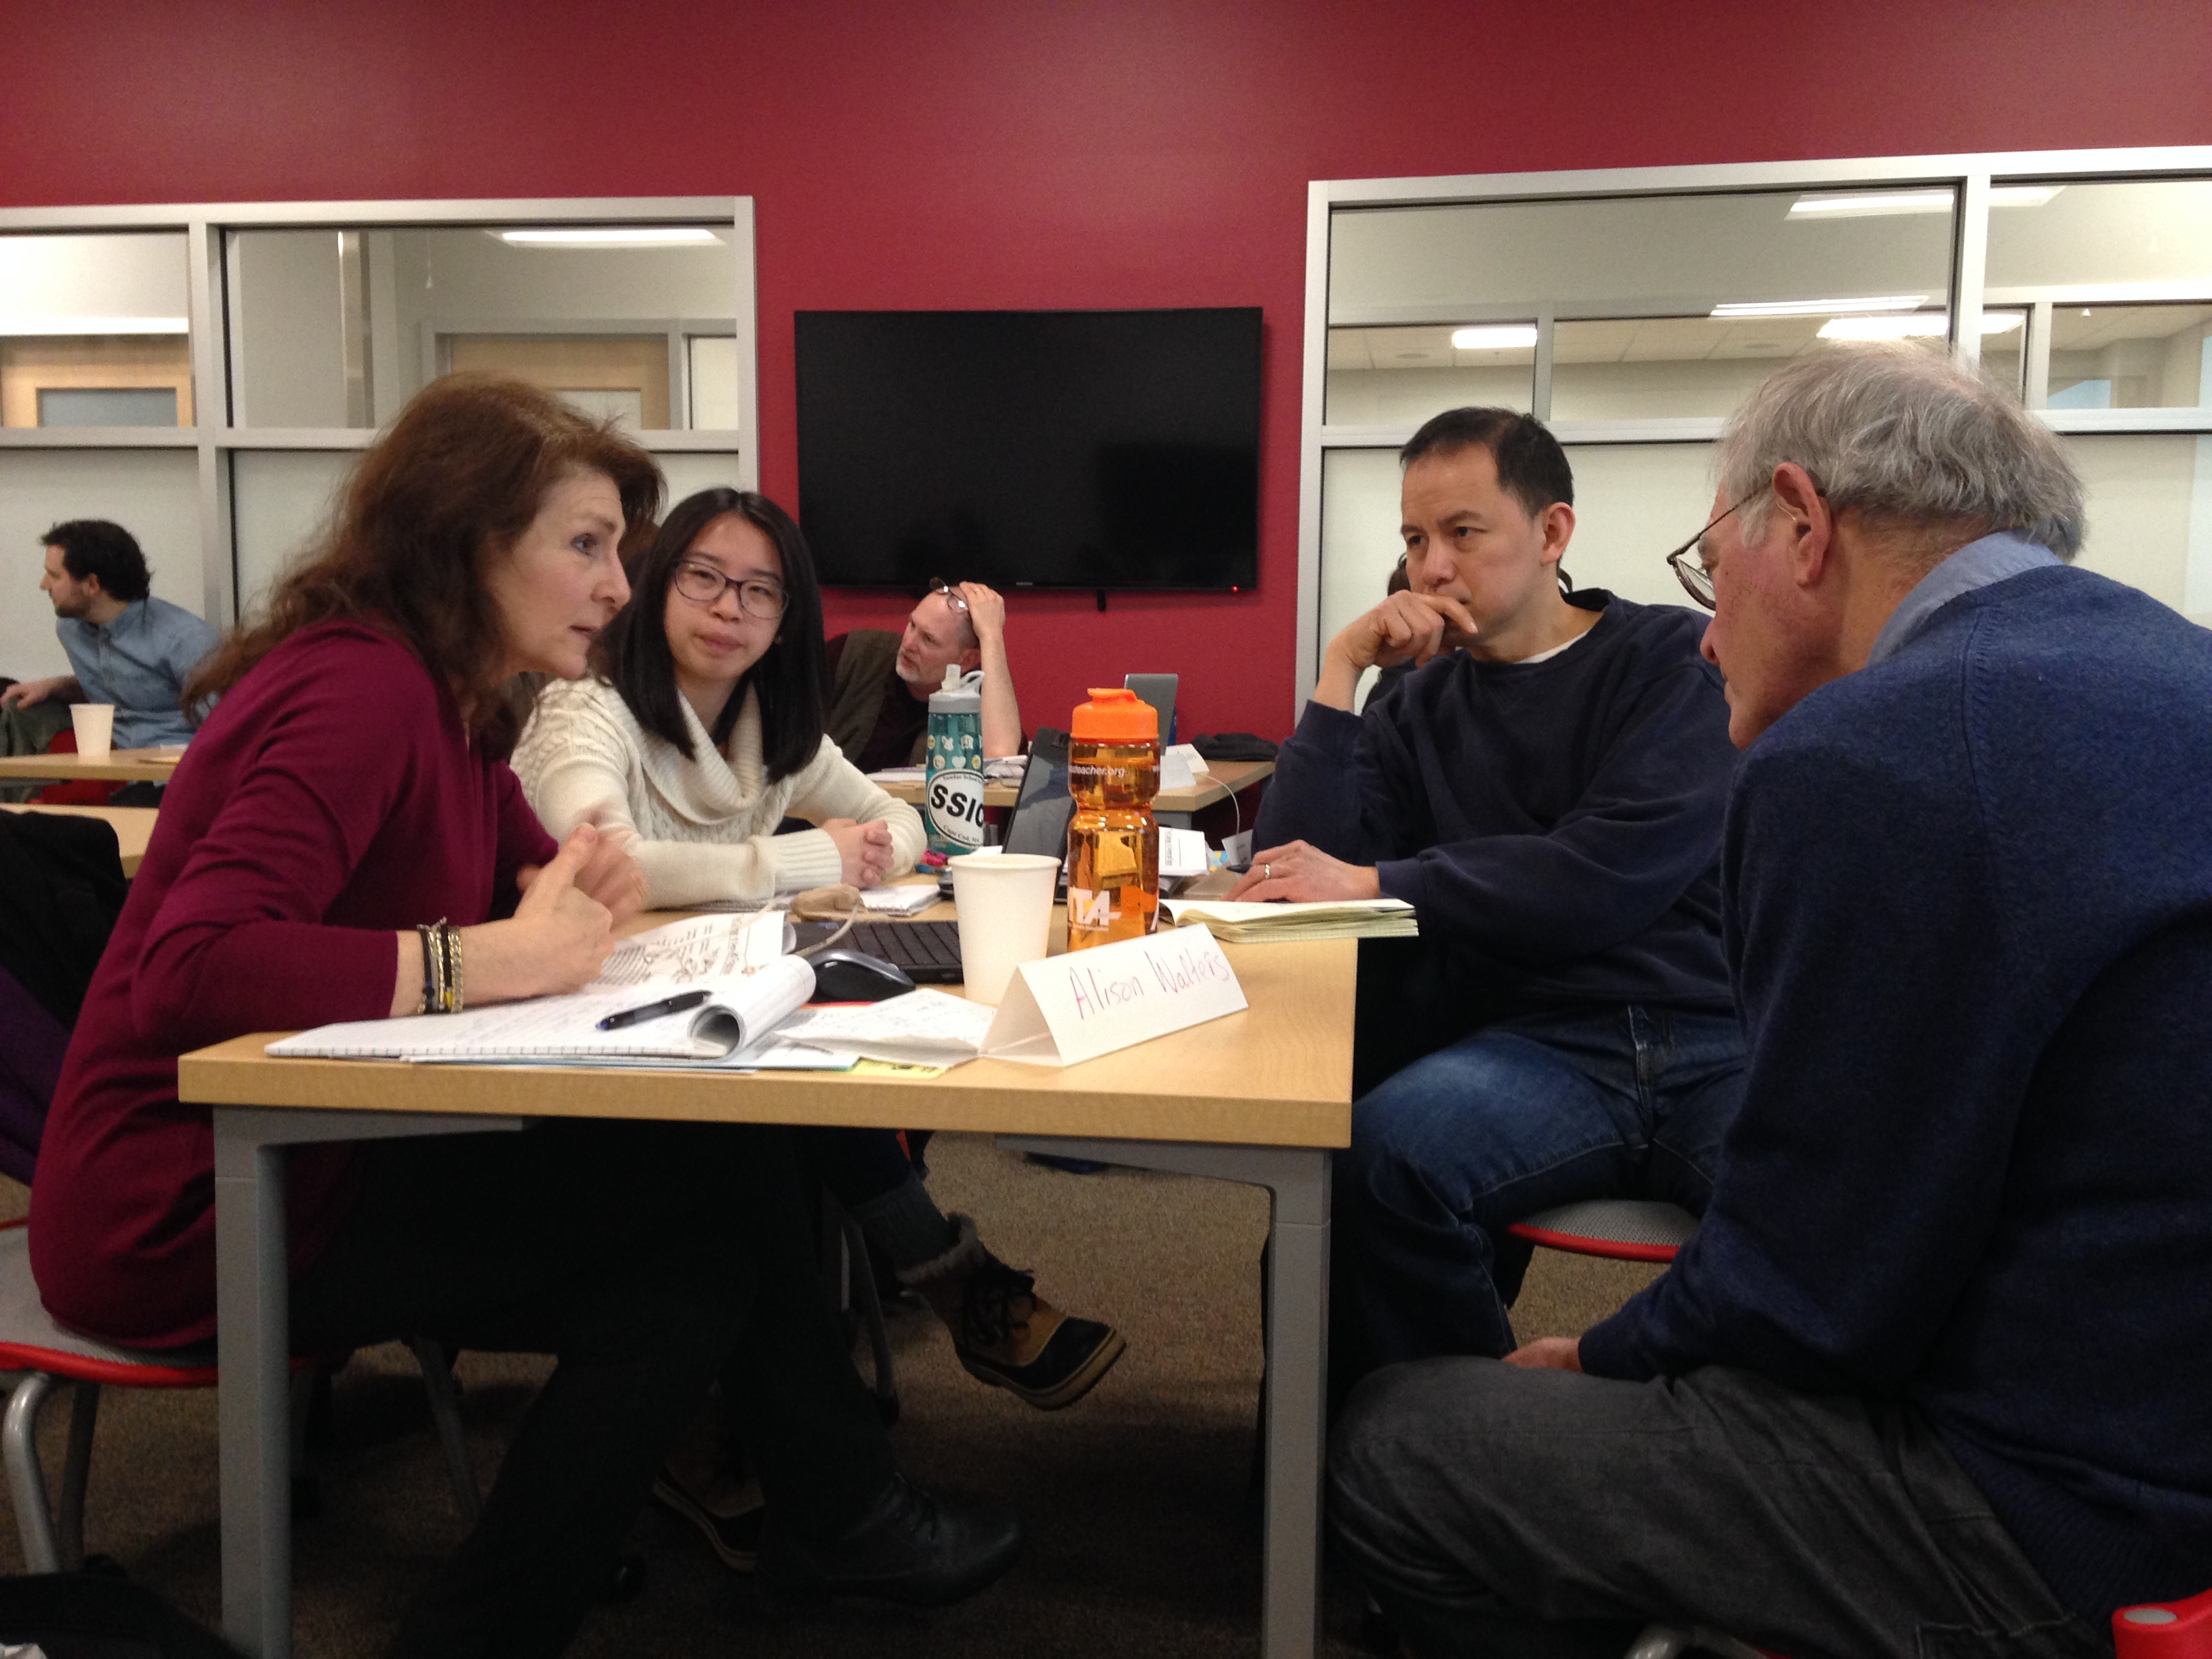 Peter Carroll working with Massachusetts teachers in the Spring of 2017. Photo R. Cairn